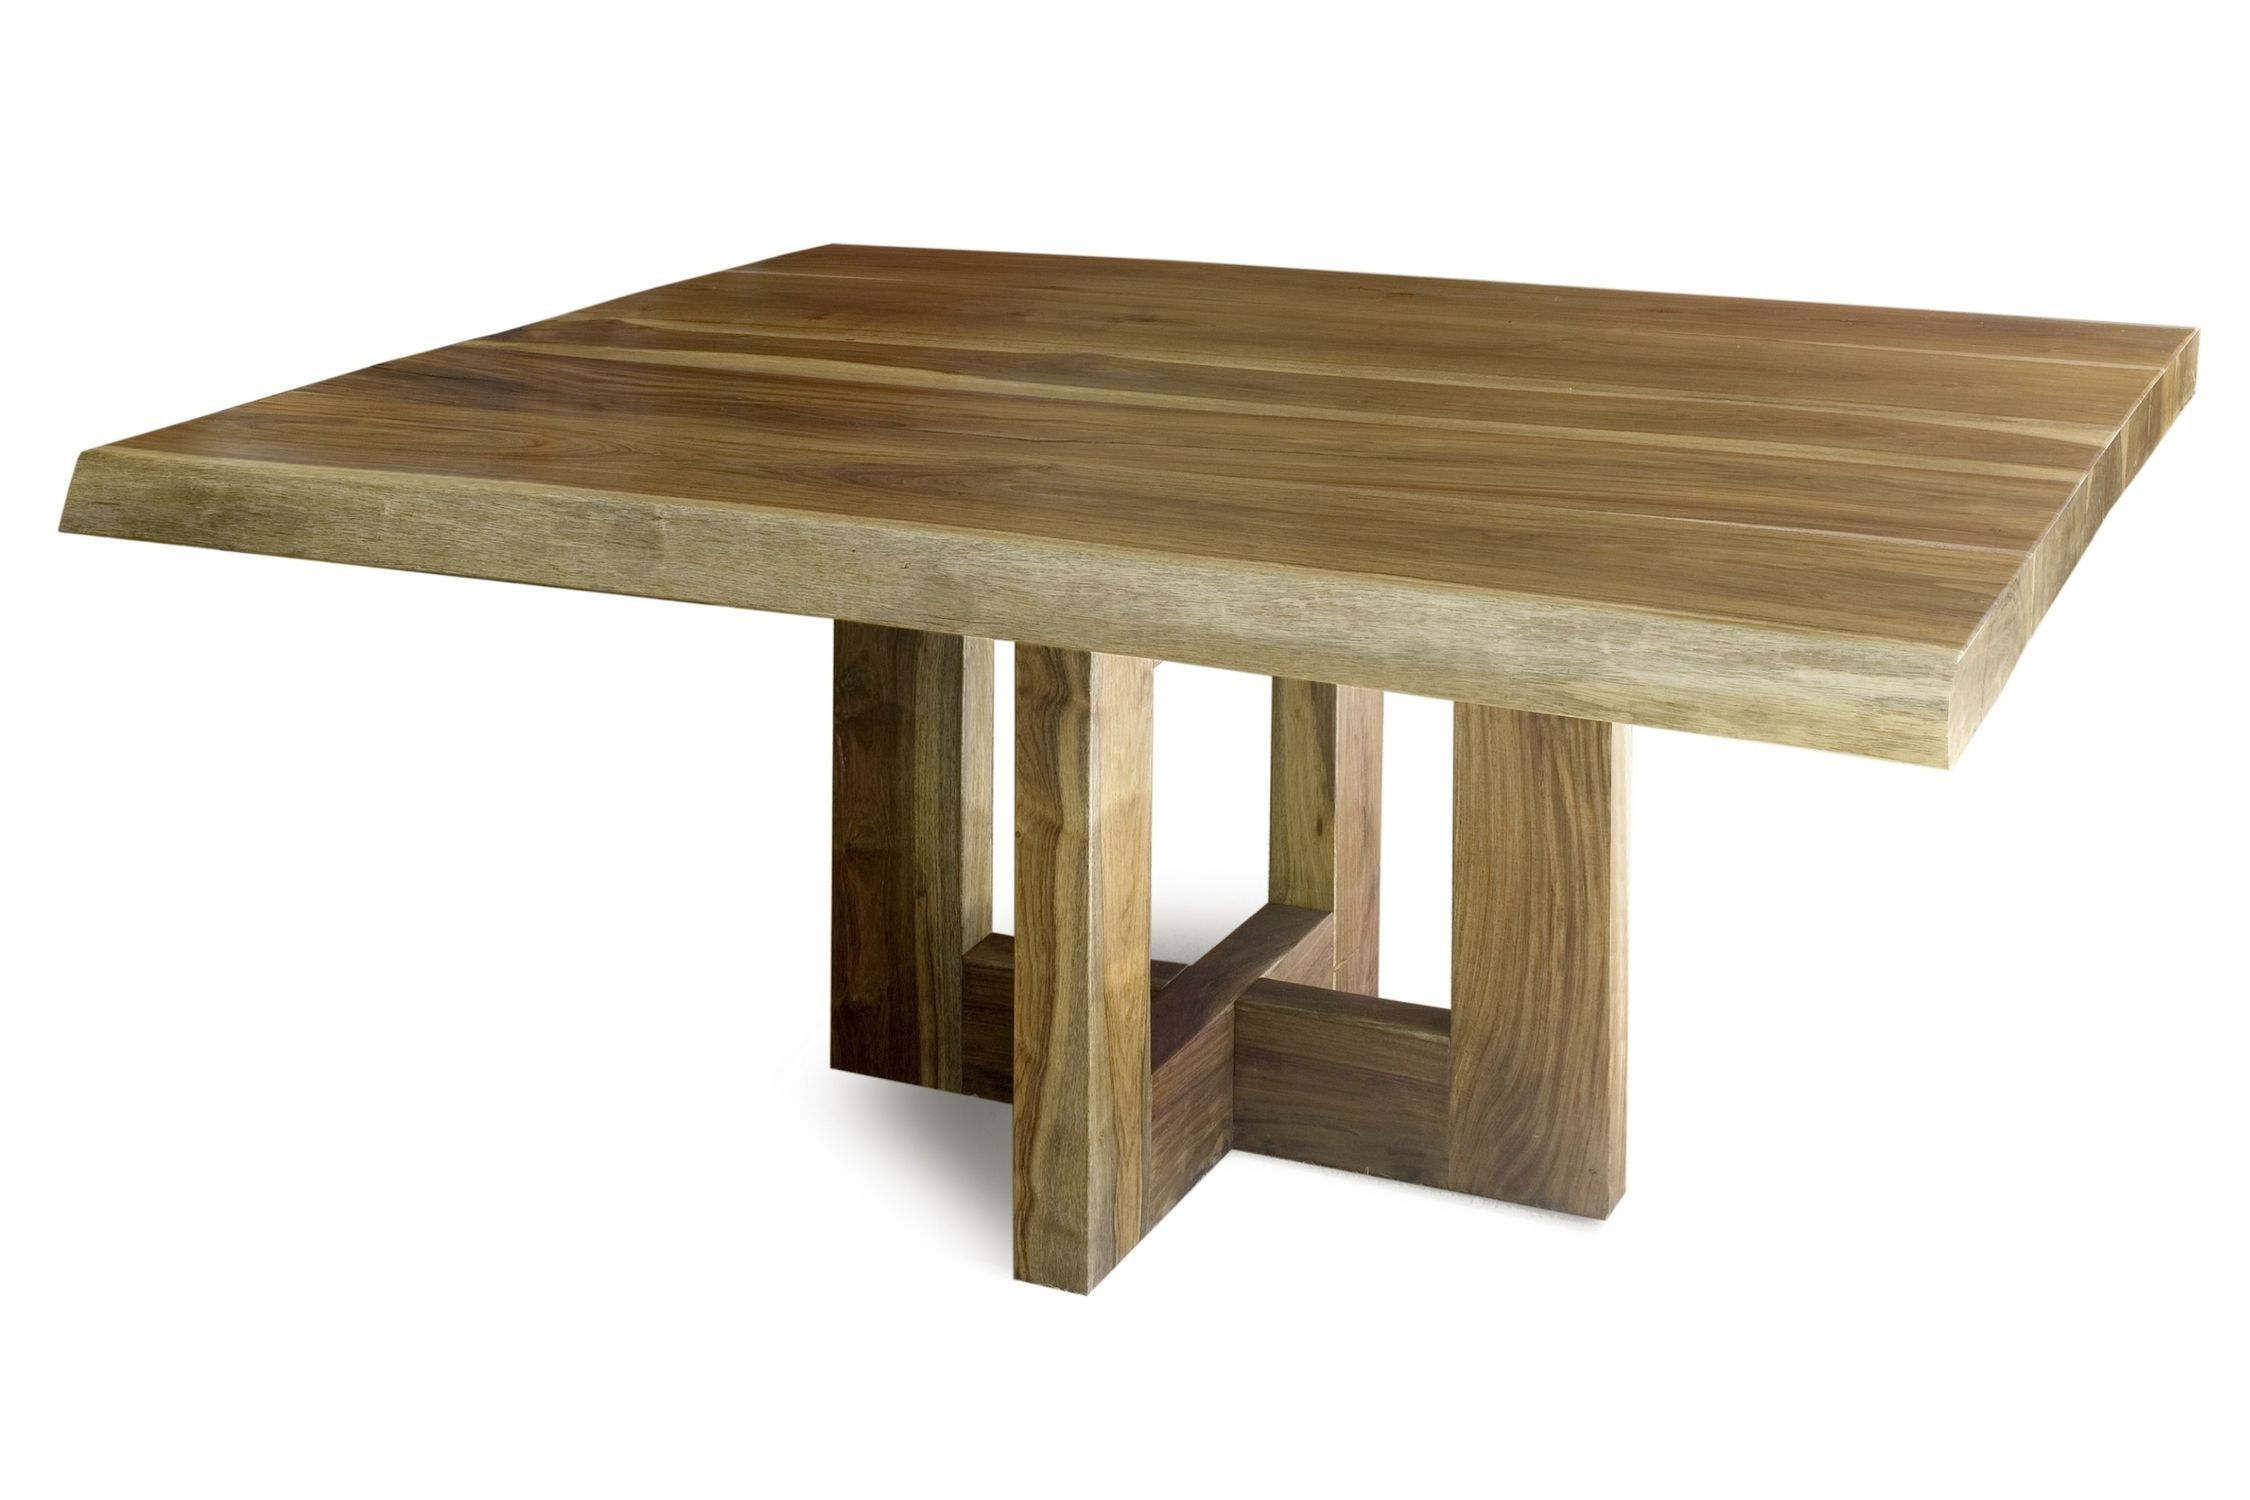 Contemporary rectangle unfinished reclaimed wood table for for Best wood for dining table